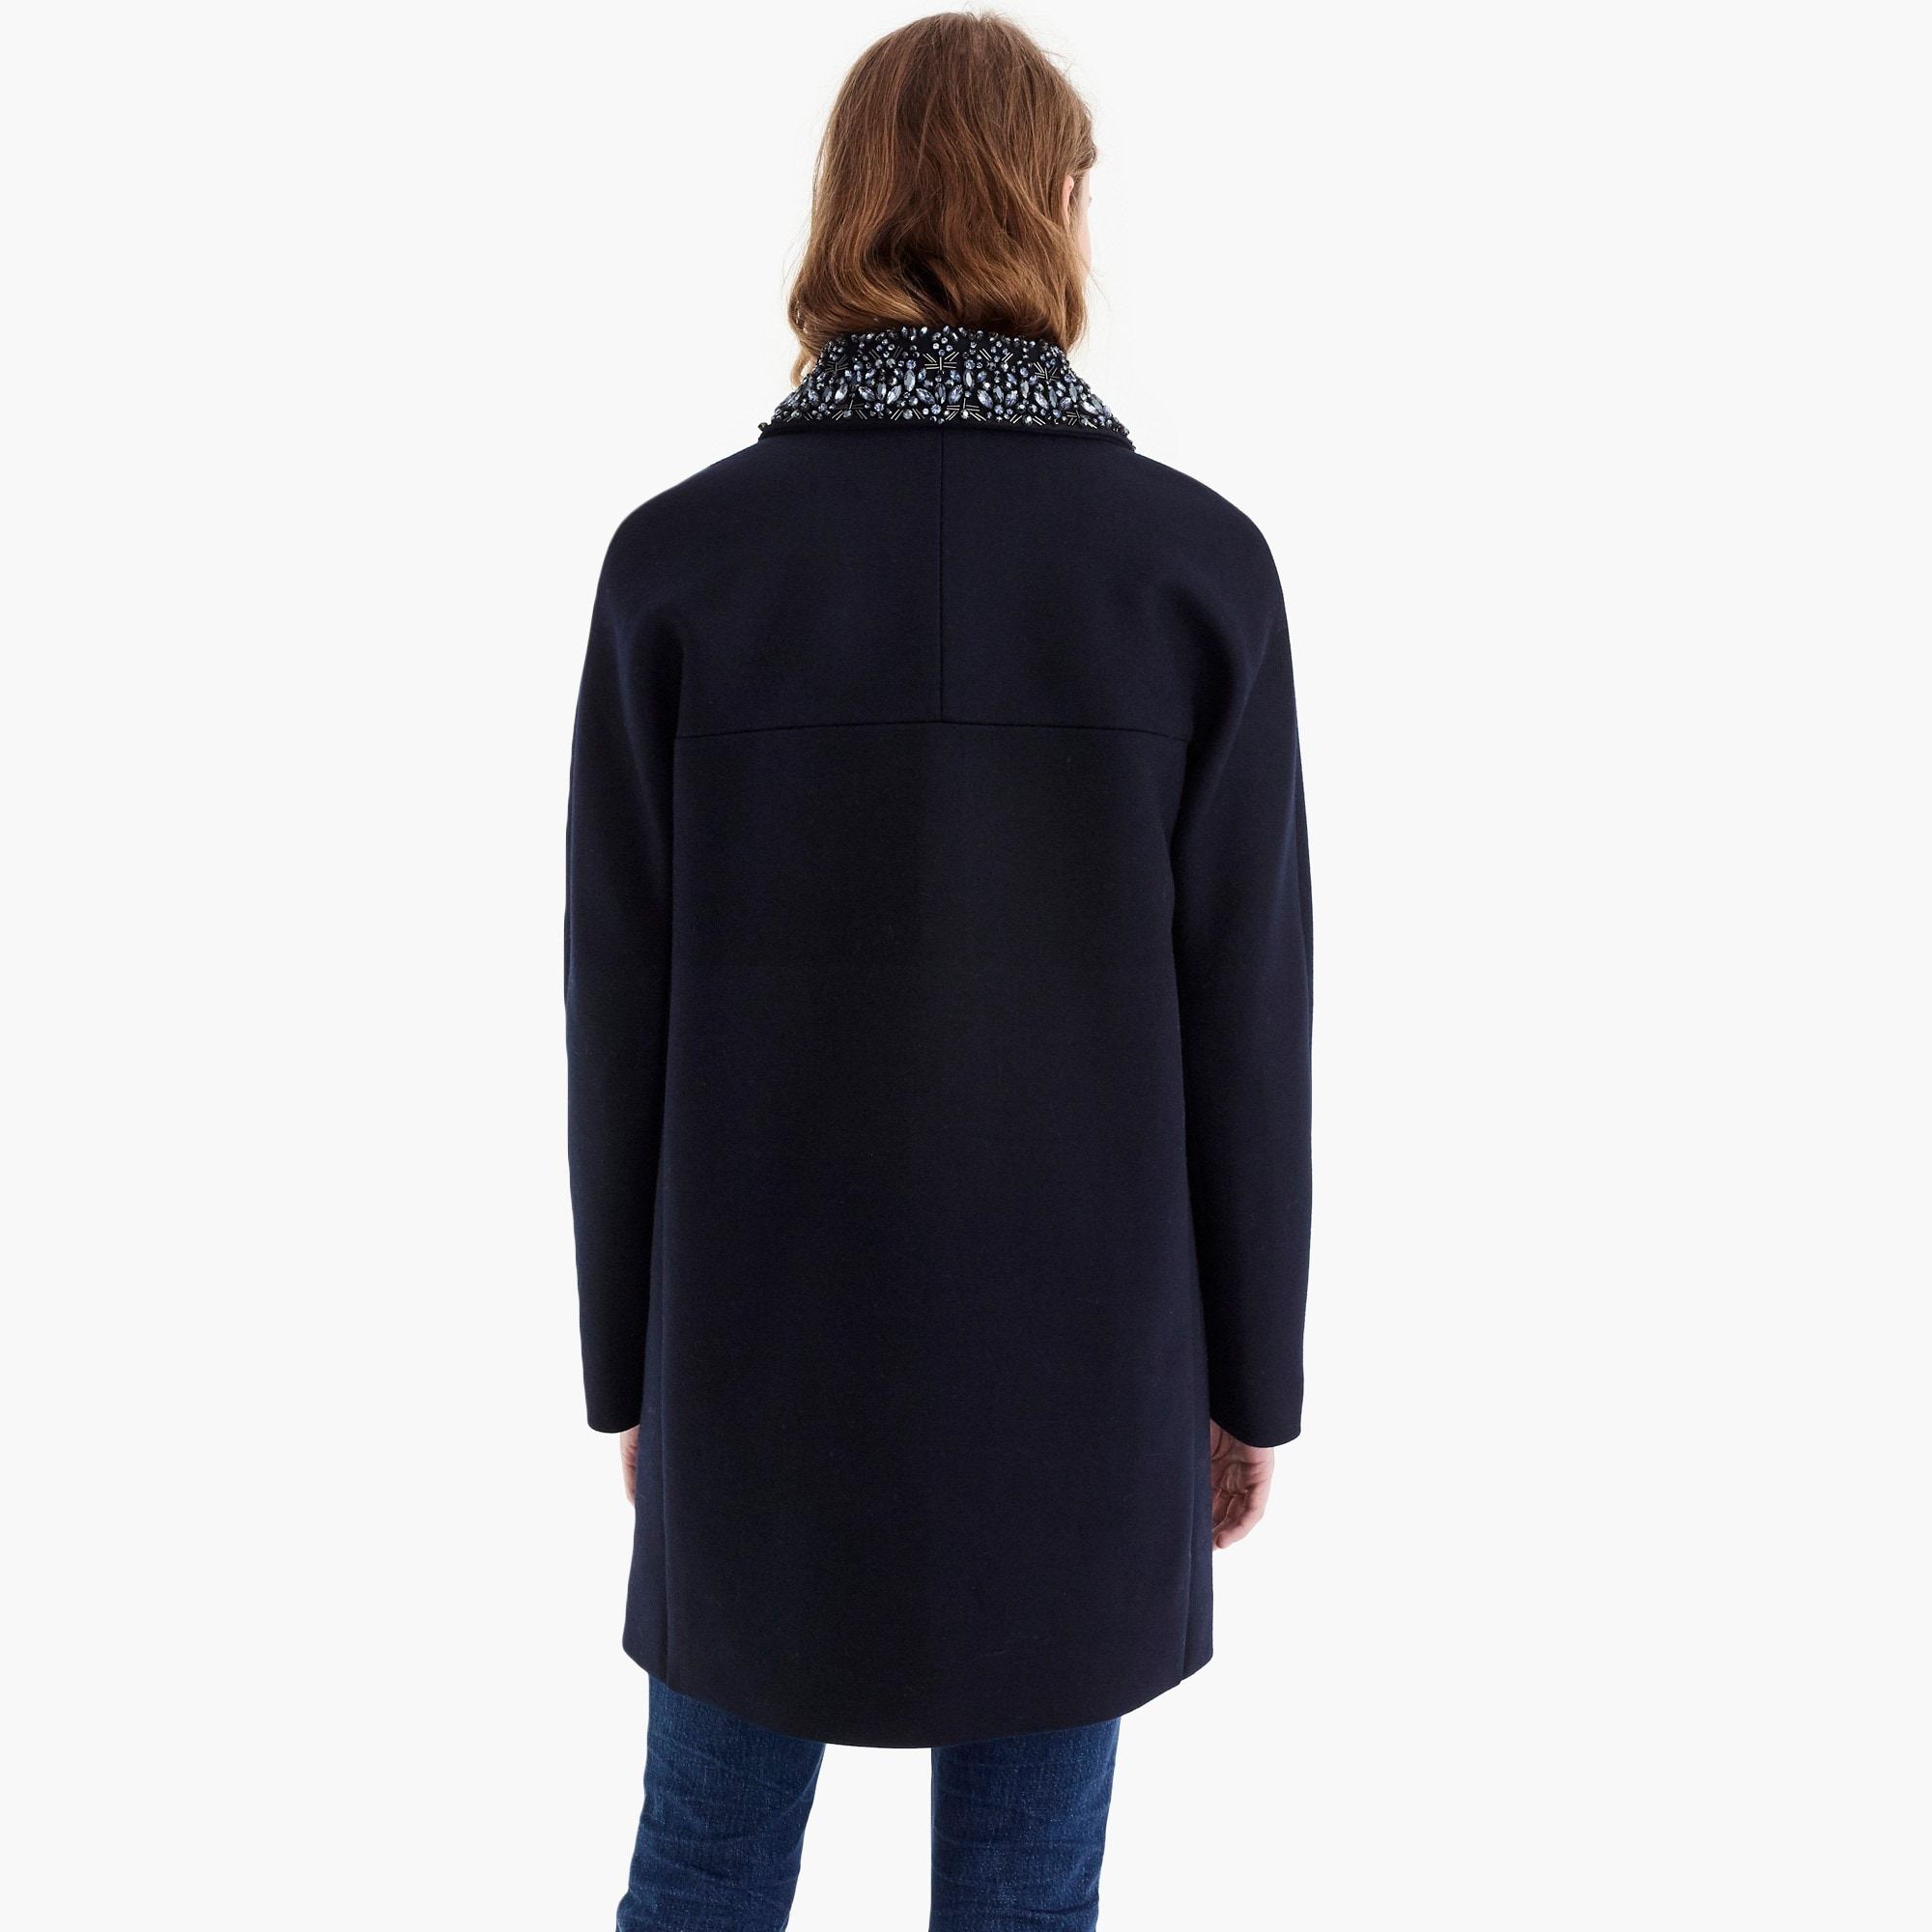 Image 5 for Collection wool melton coat with embellished collar